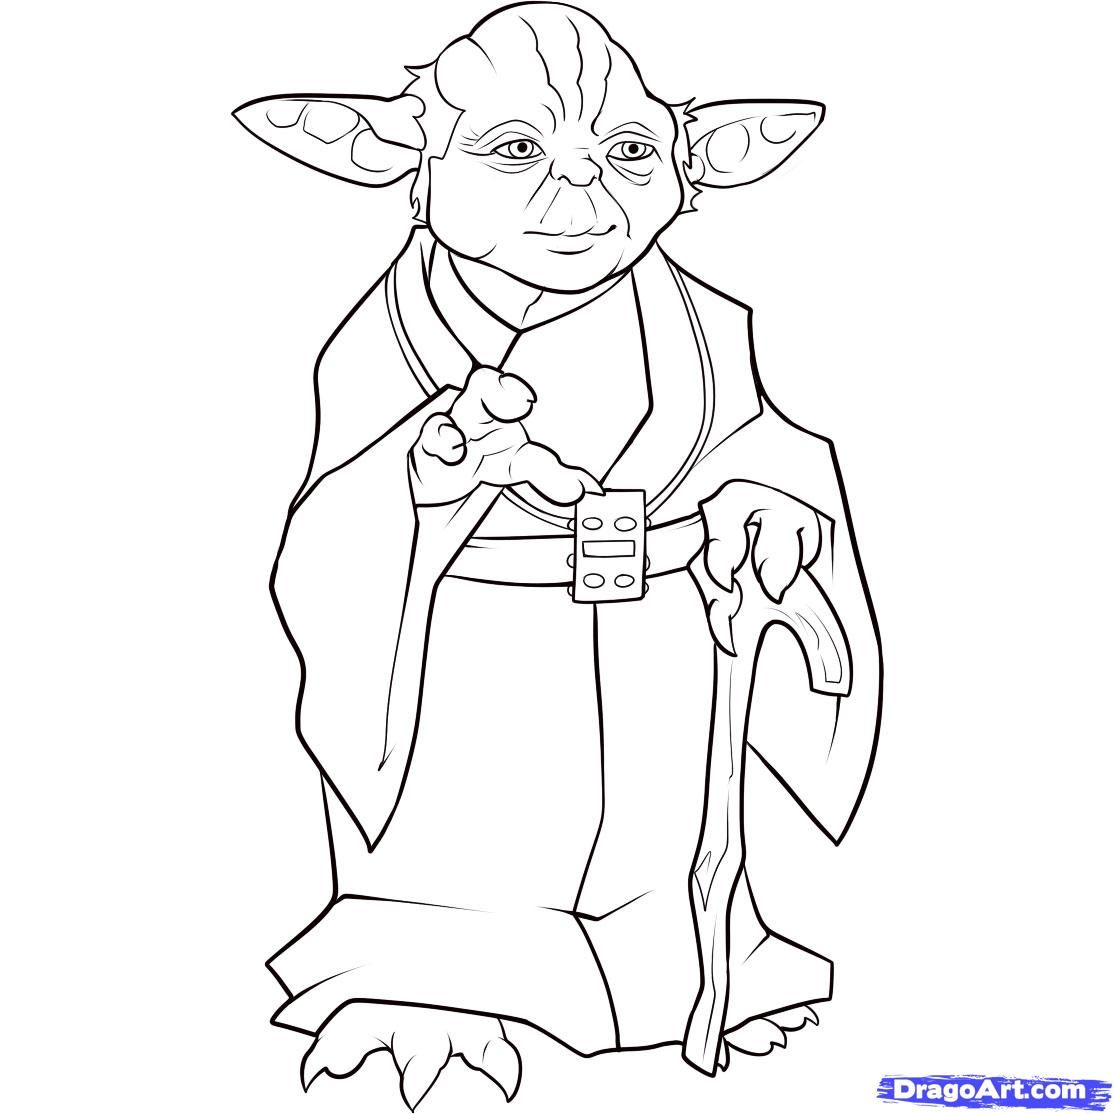 yoda coloring page party ideas pinterest star bulletin rh pinterest com angel wings coloring pages star - Yoda Coloring Pages